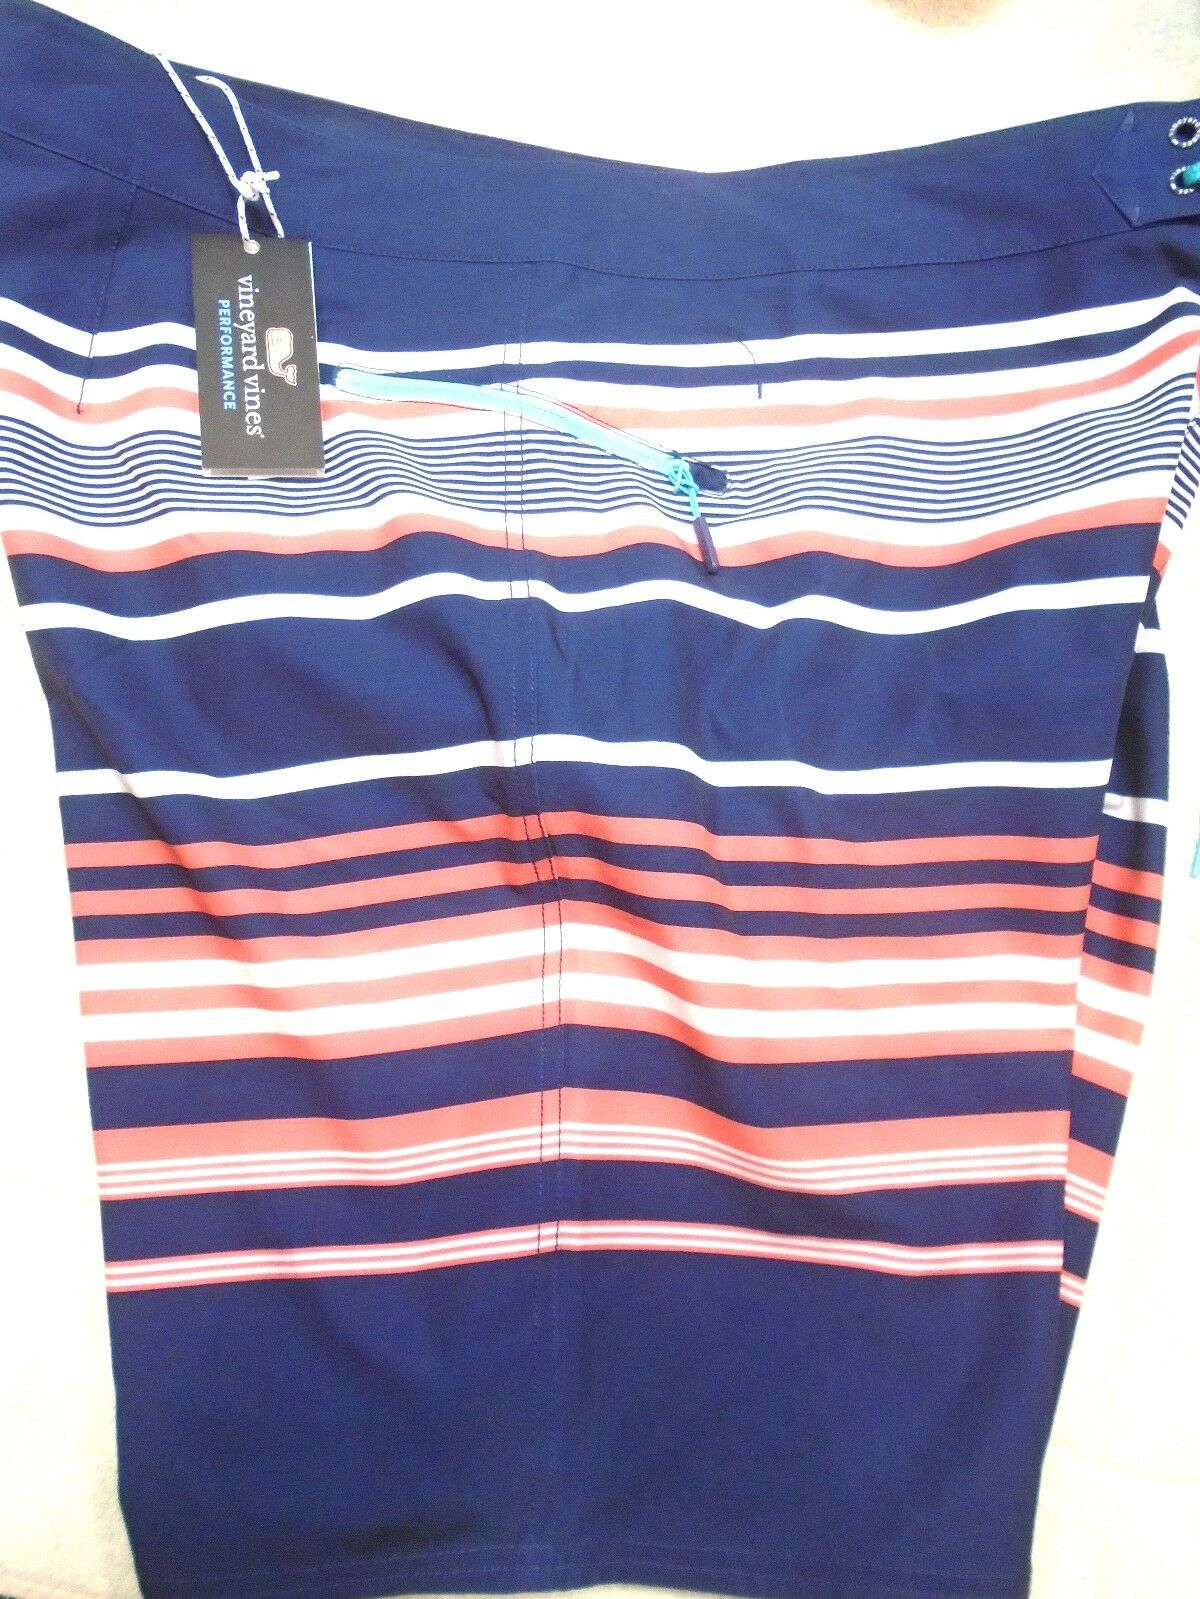 Vineyard vines Board Shorts Americana Stripe Pattern Swim Trunk NWT 40